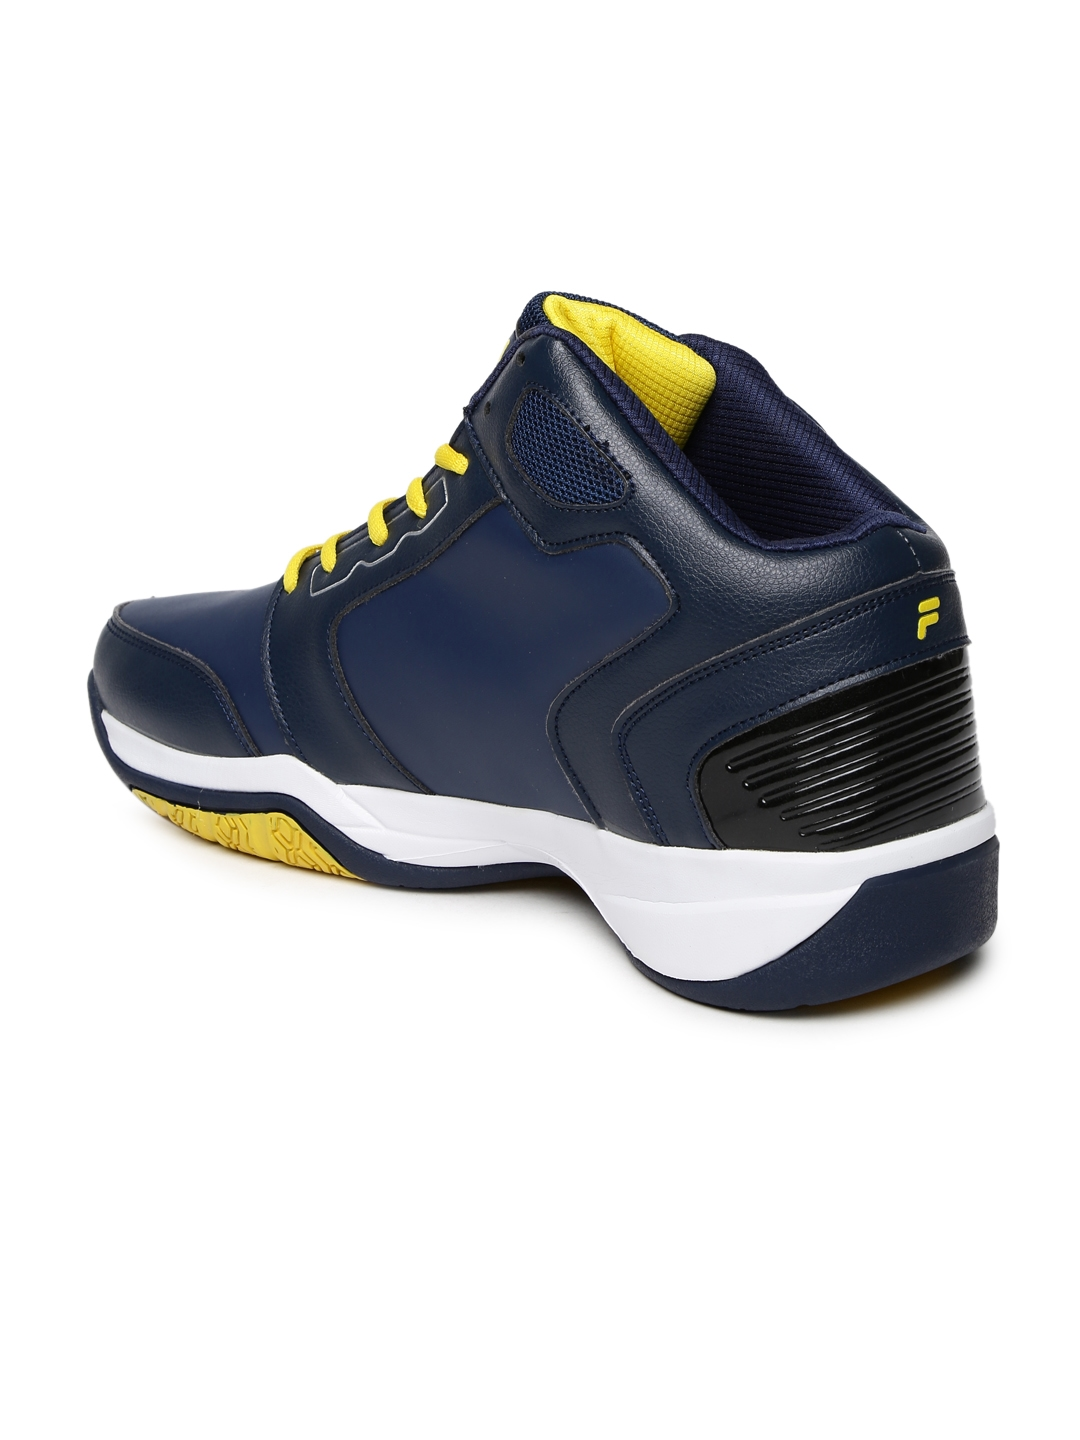 7a5454c9154d Buy FILA Men Blue Synthetic Mid Top Commit 2 Basketball Shoes ...